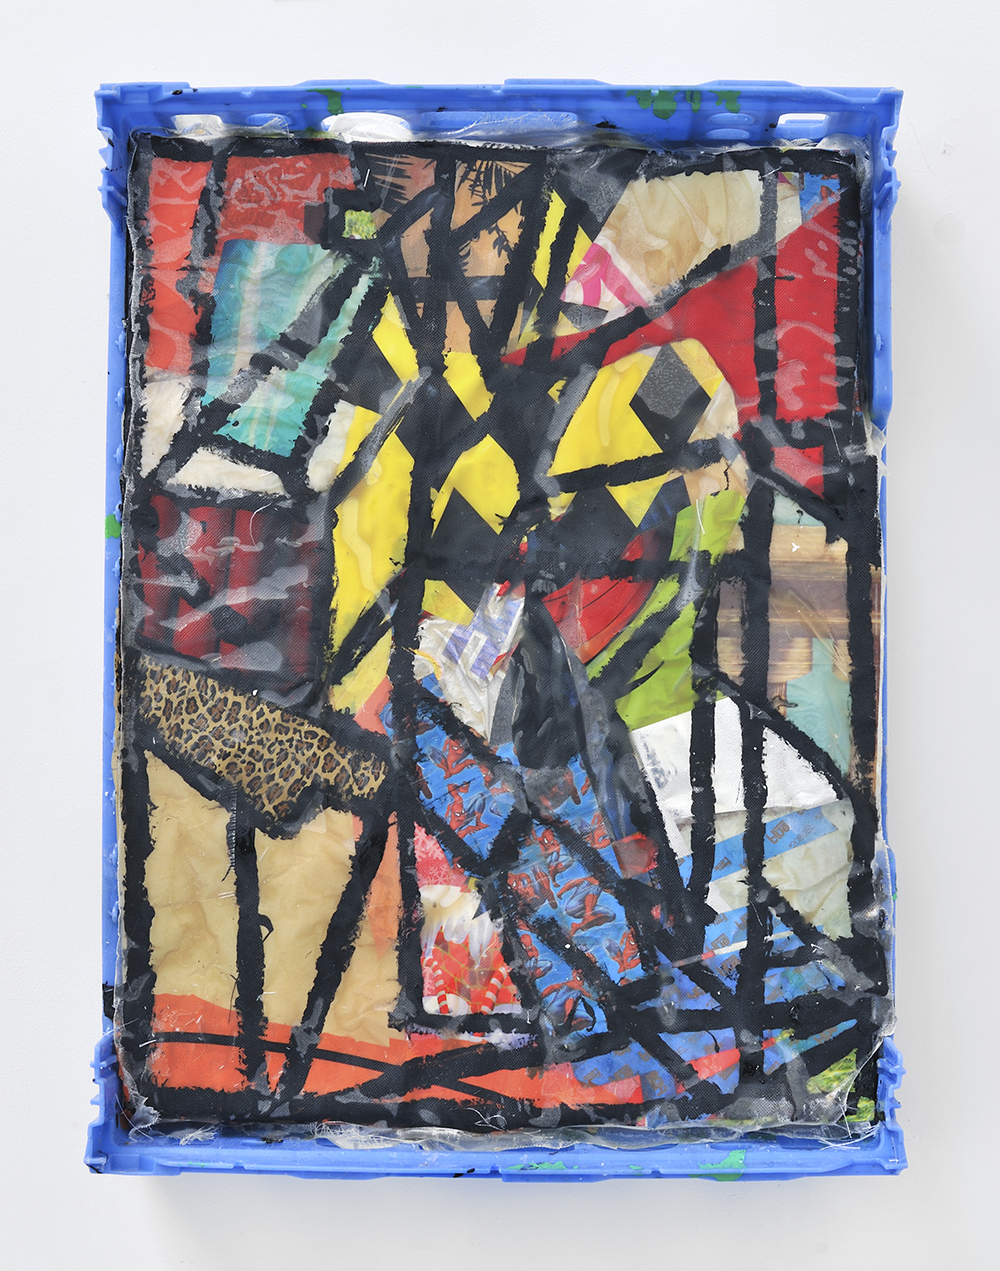 Denver, 2013, Mixed media on plastic, 56,5 x 76 x 15 cm 